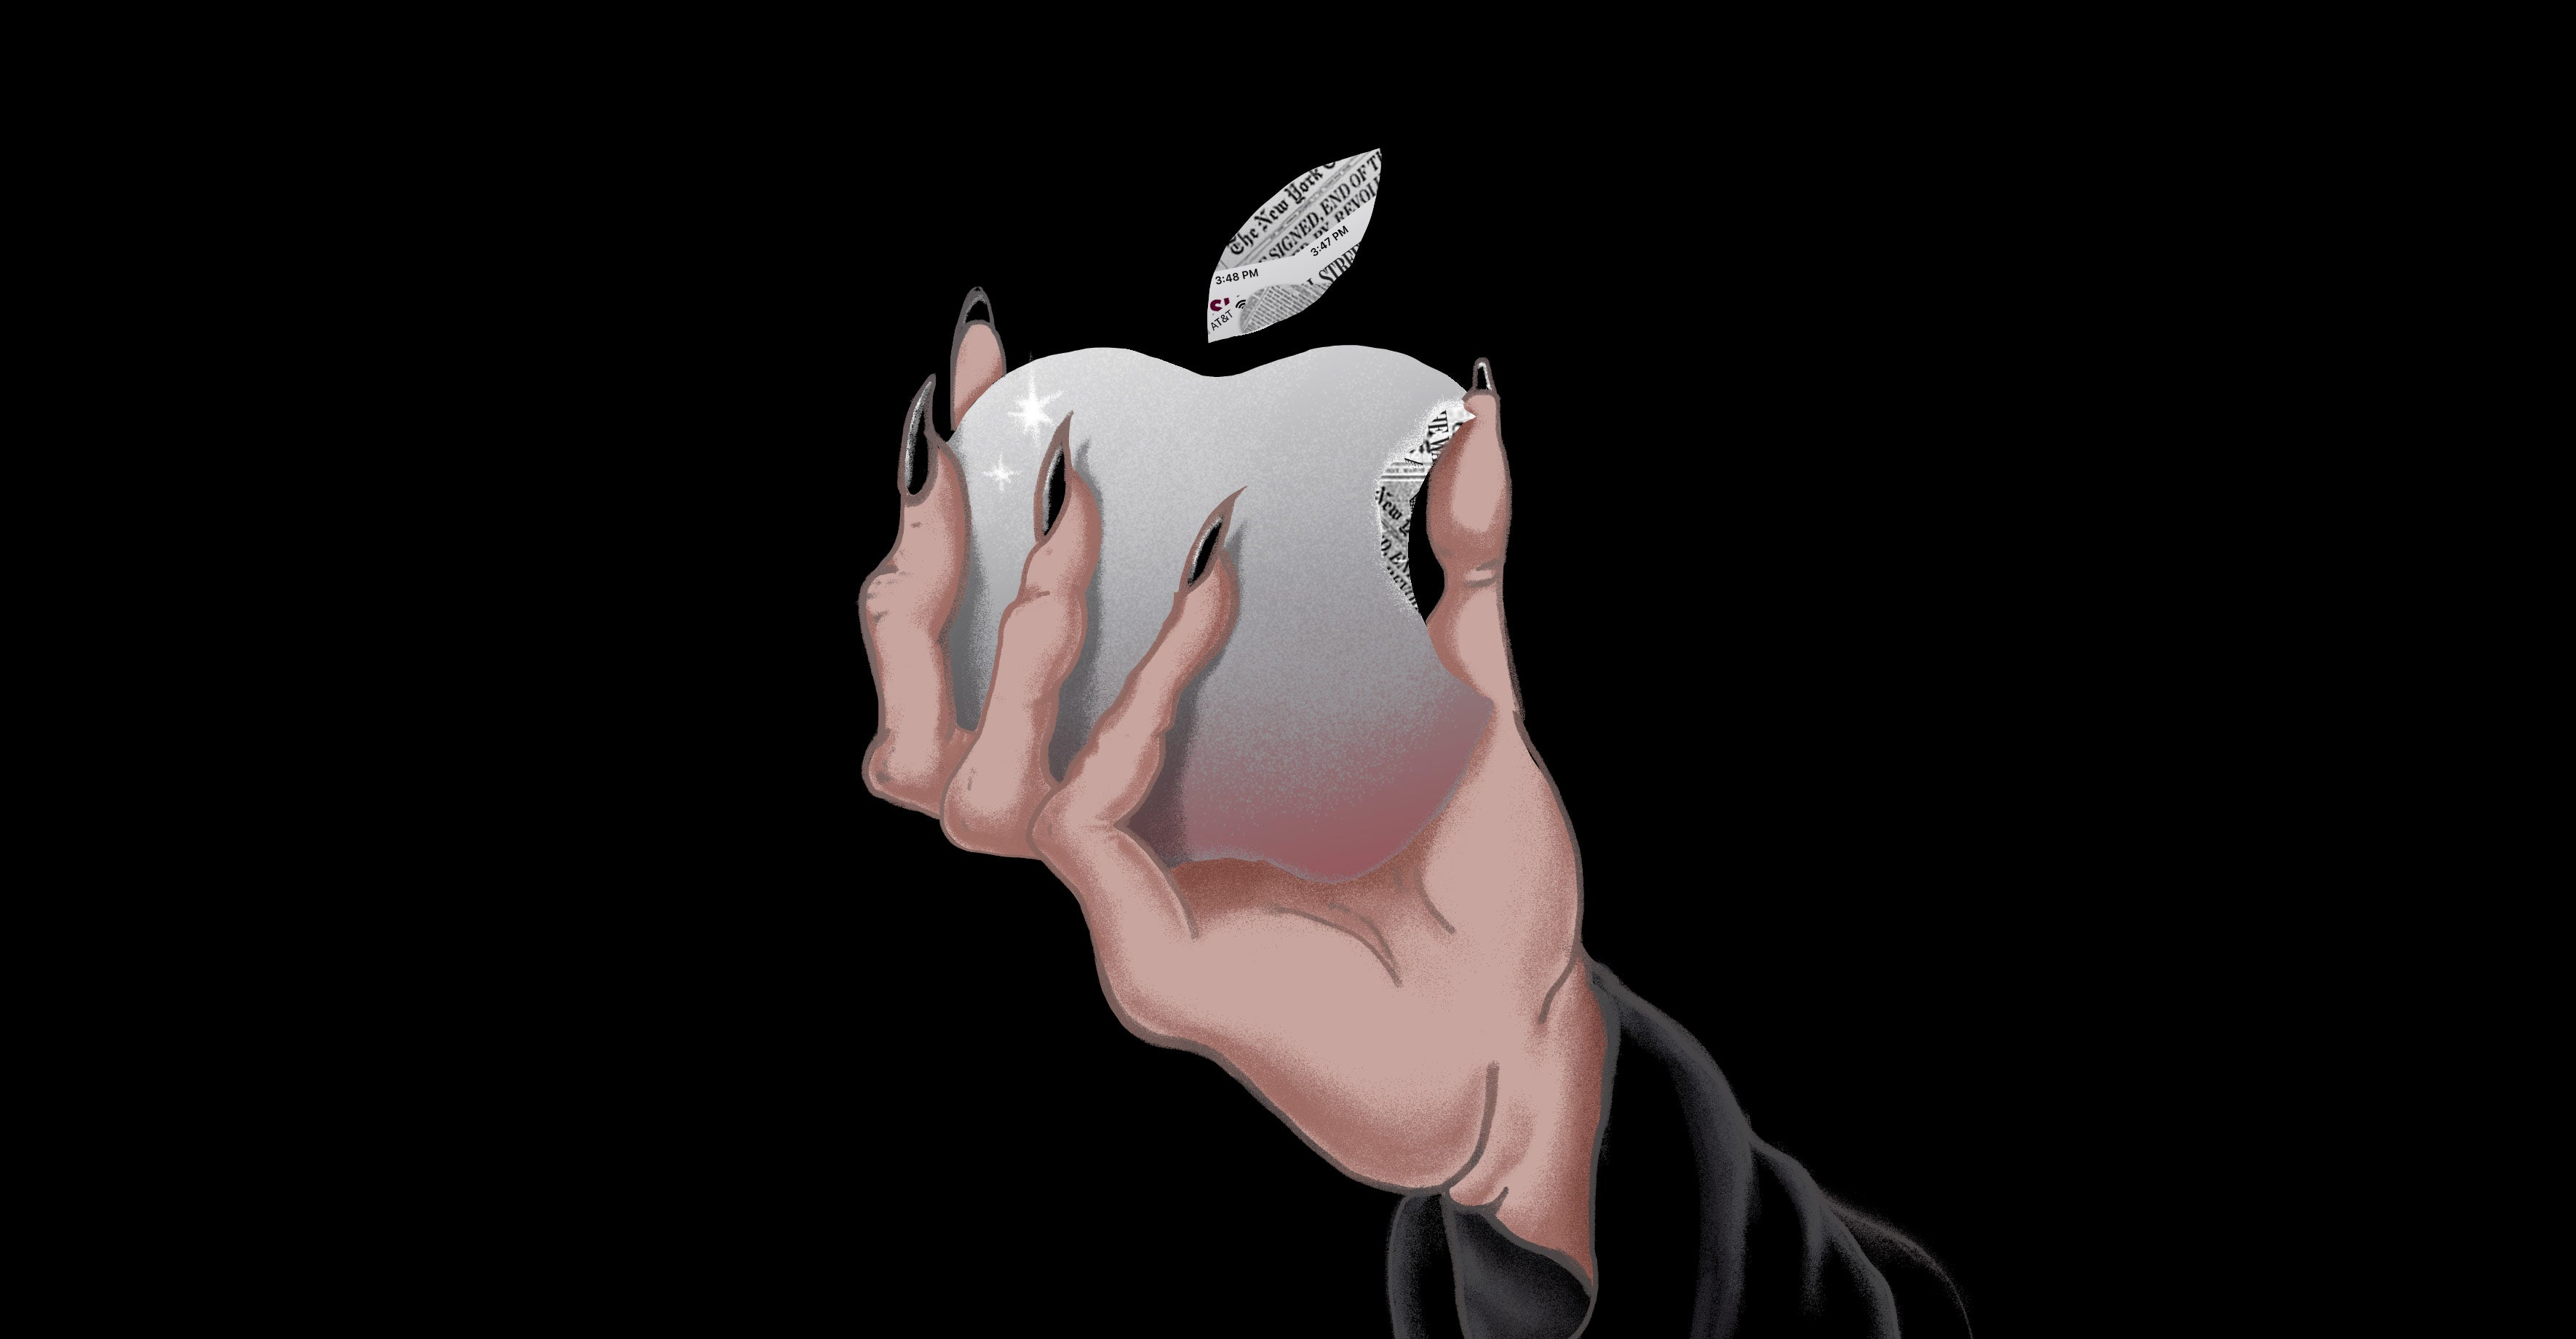 A hand with painted pointy black nails holds an apple with a bite taken out of it. The leaves and the bite mark are newsprint patterned.